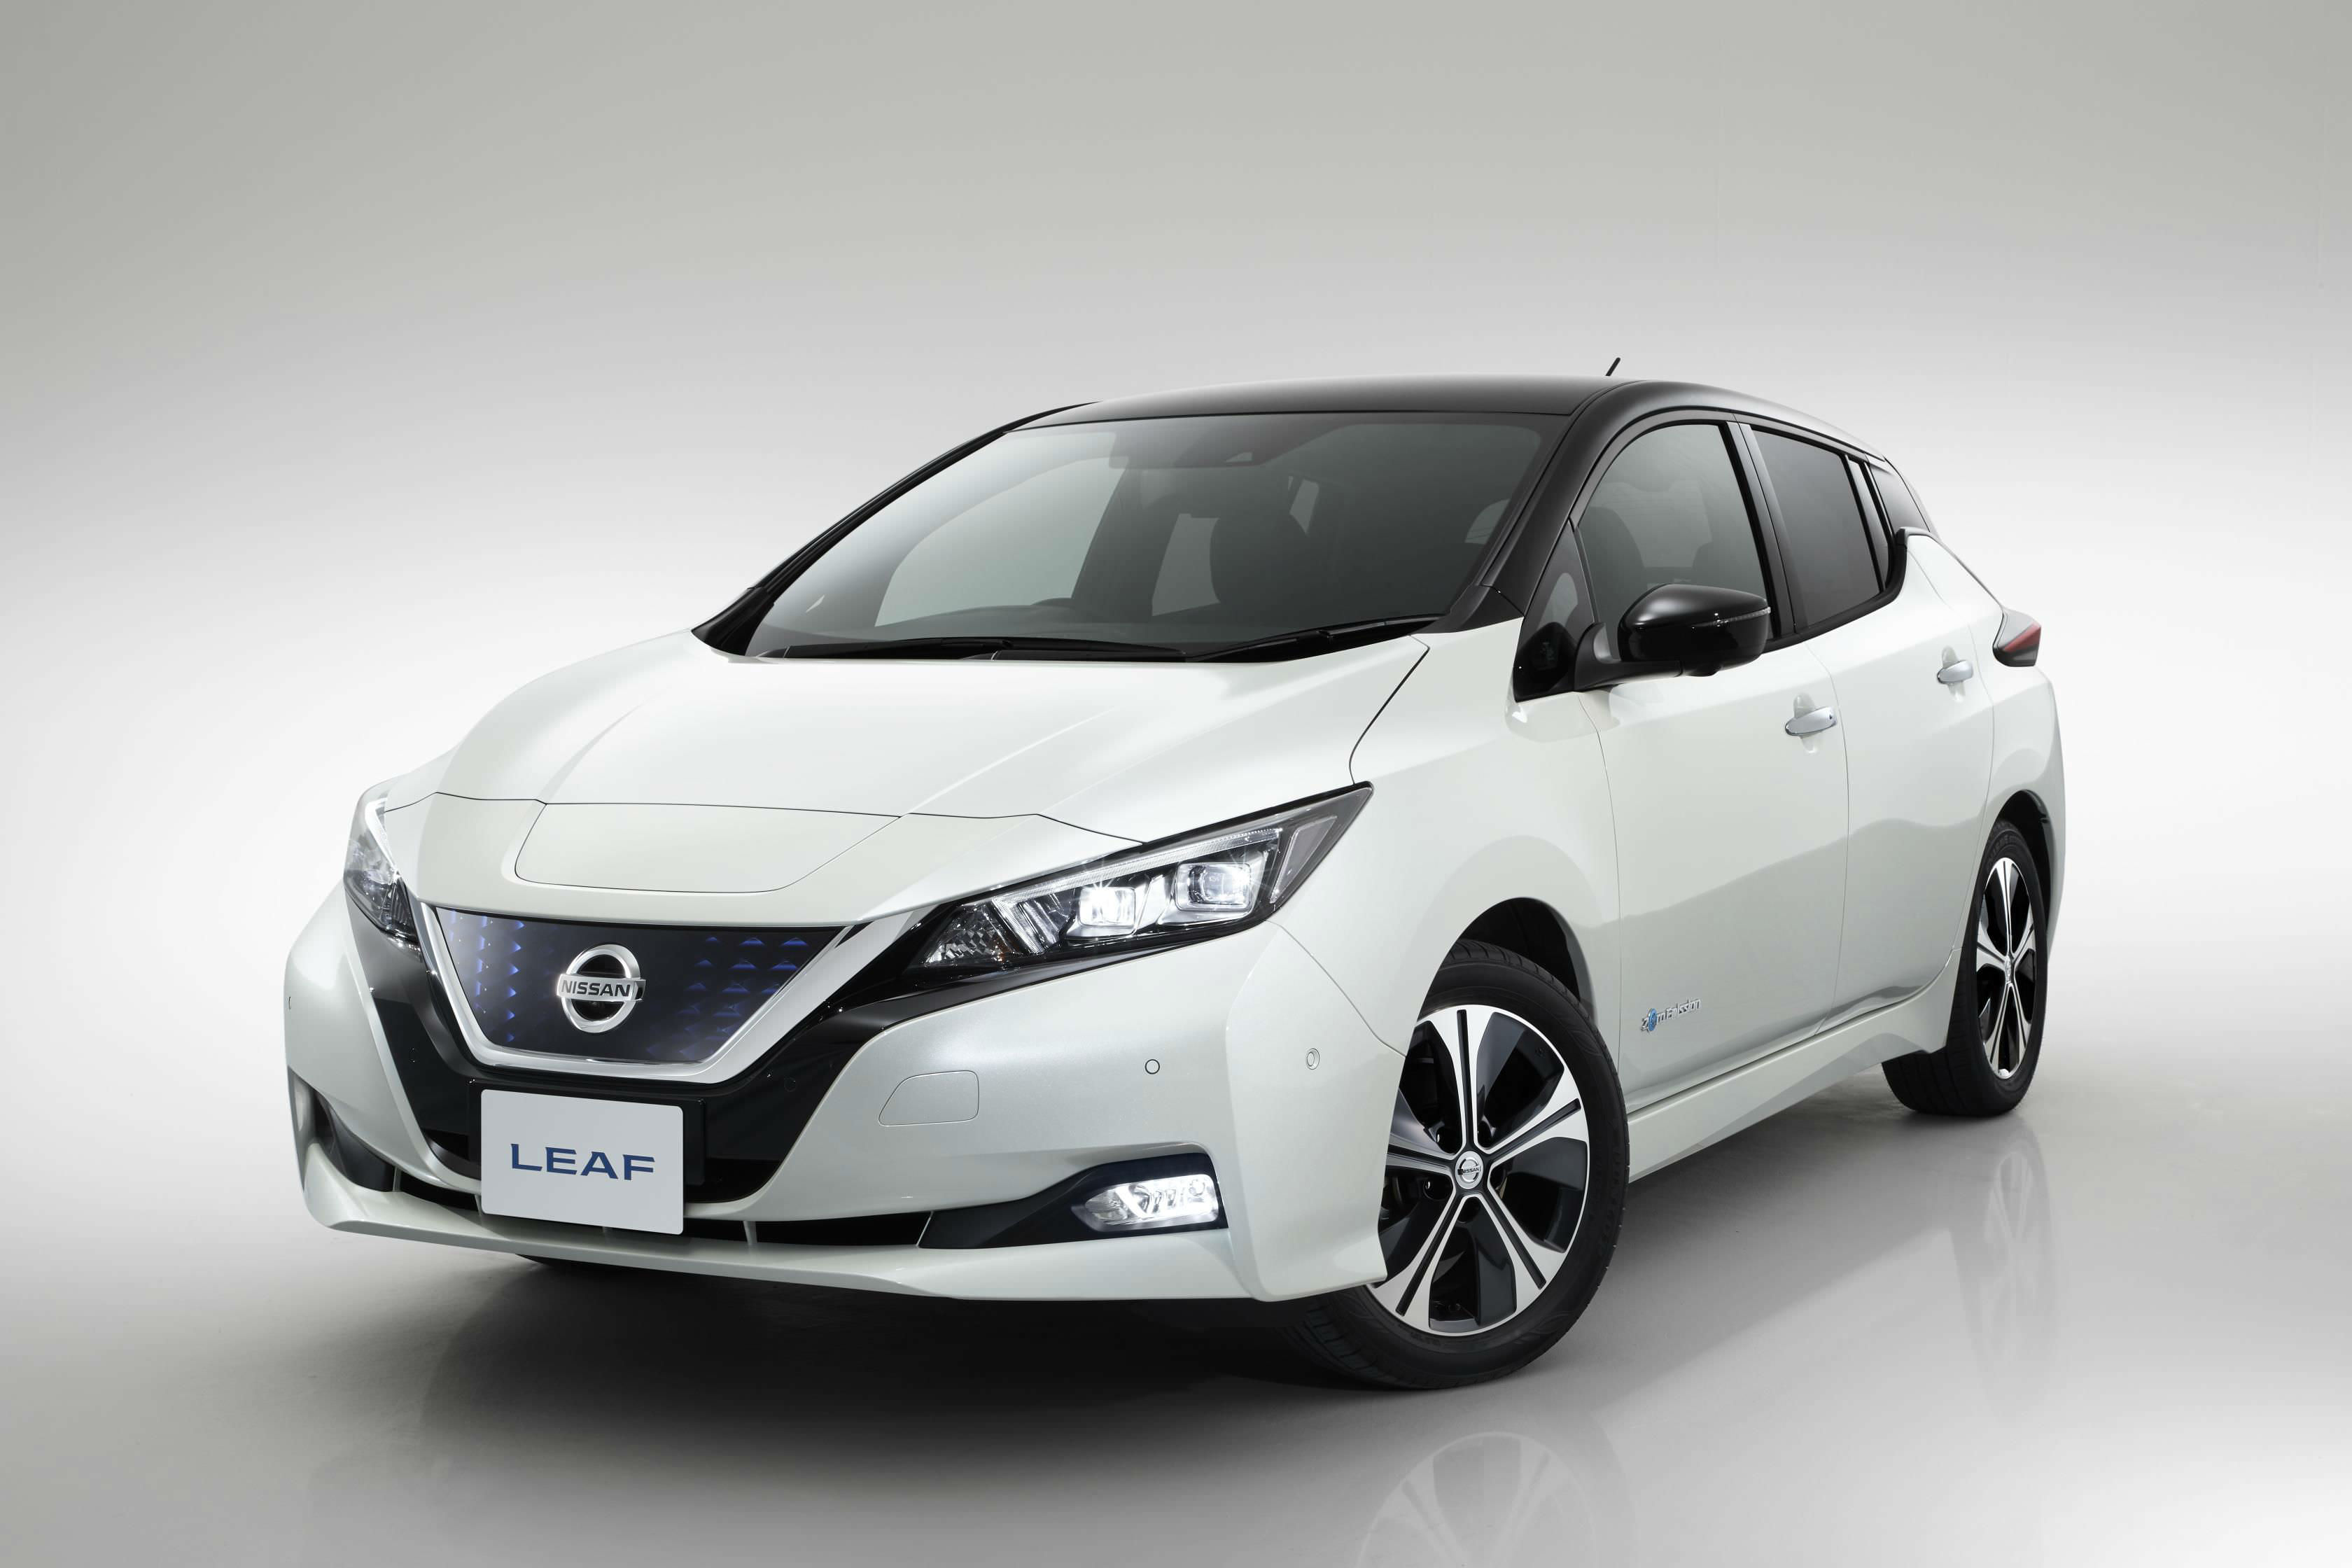 image of an white nissan leaf concept car at frankfurt motor show 2017